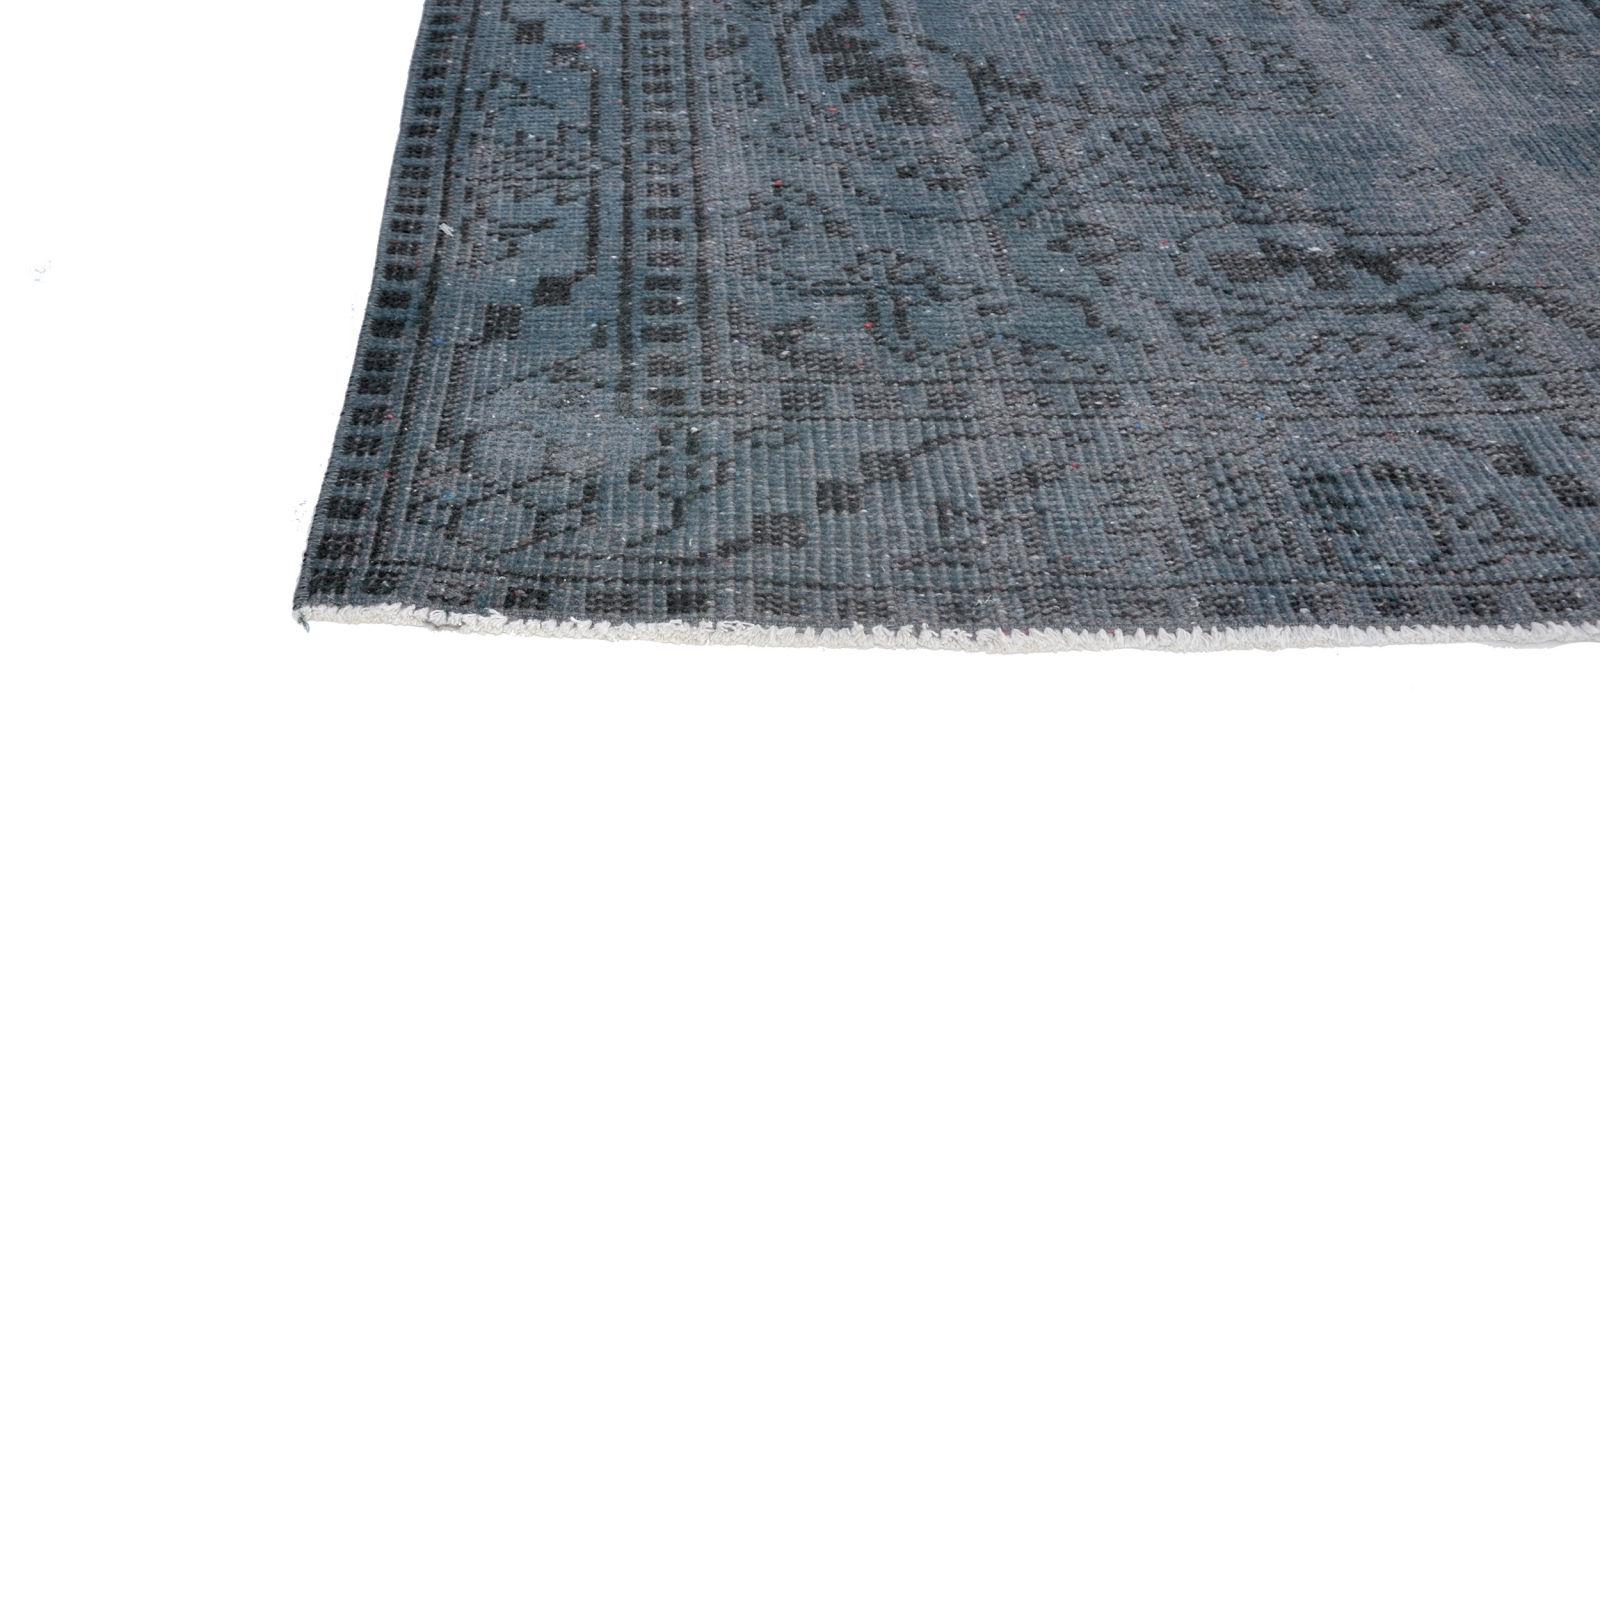 bleu fonc vintage tapis recolor s 287x164cm. Black Bedroom Furniture Sets. Home Design Ideas